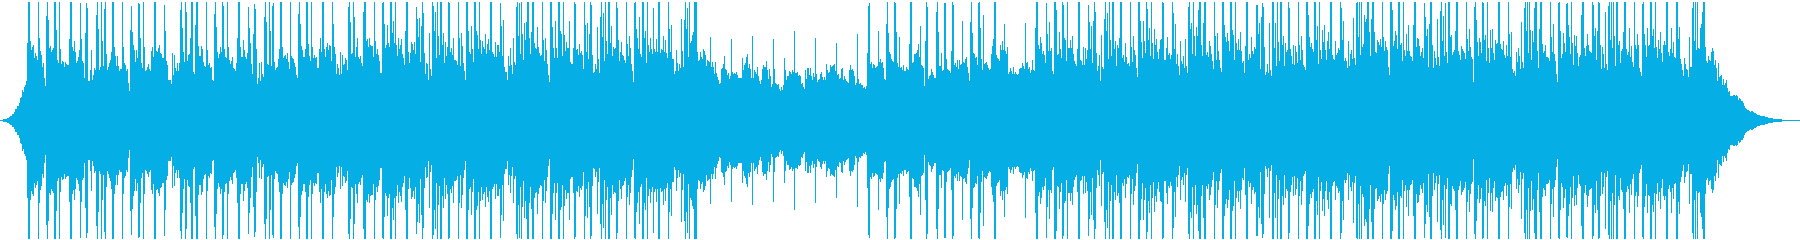 Electronic soft lounge's reproduced waveform